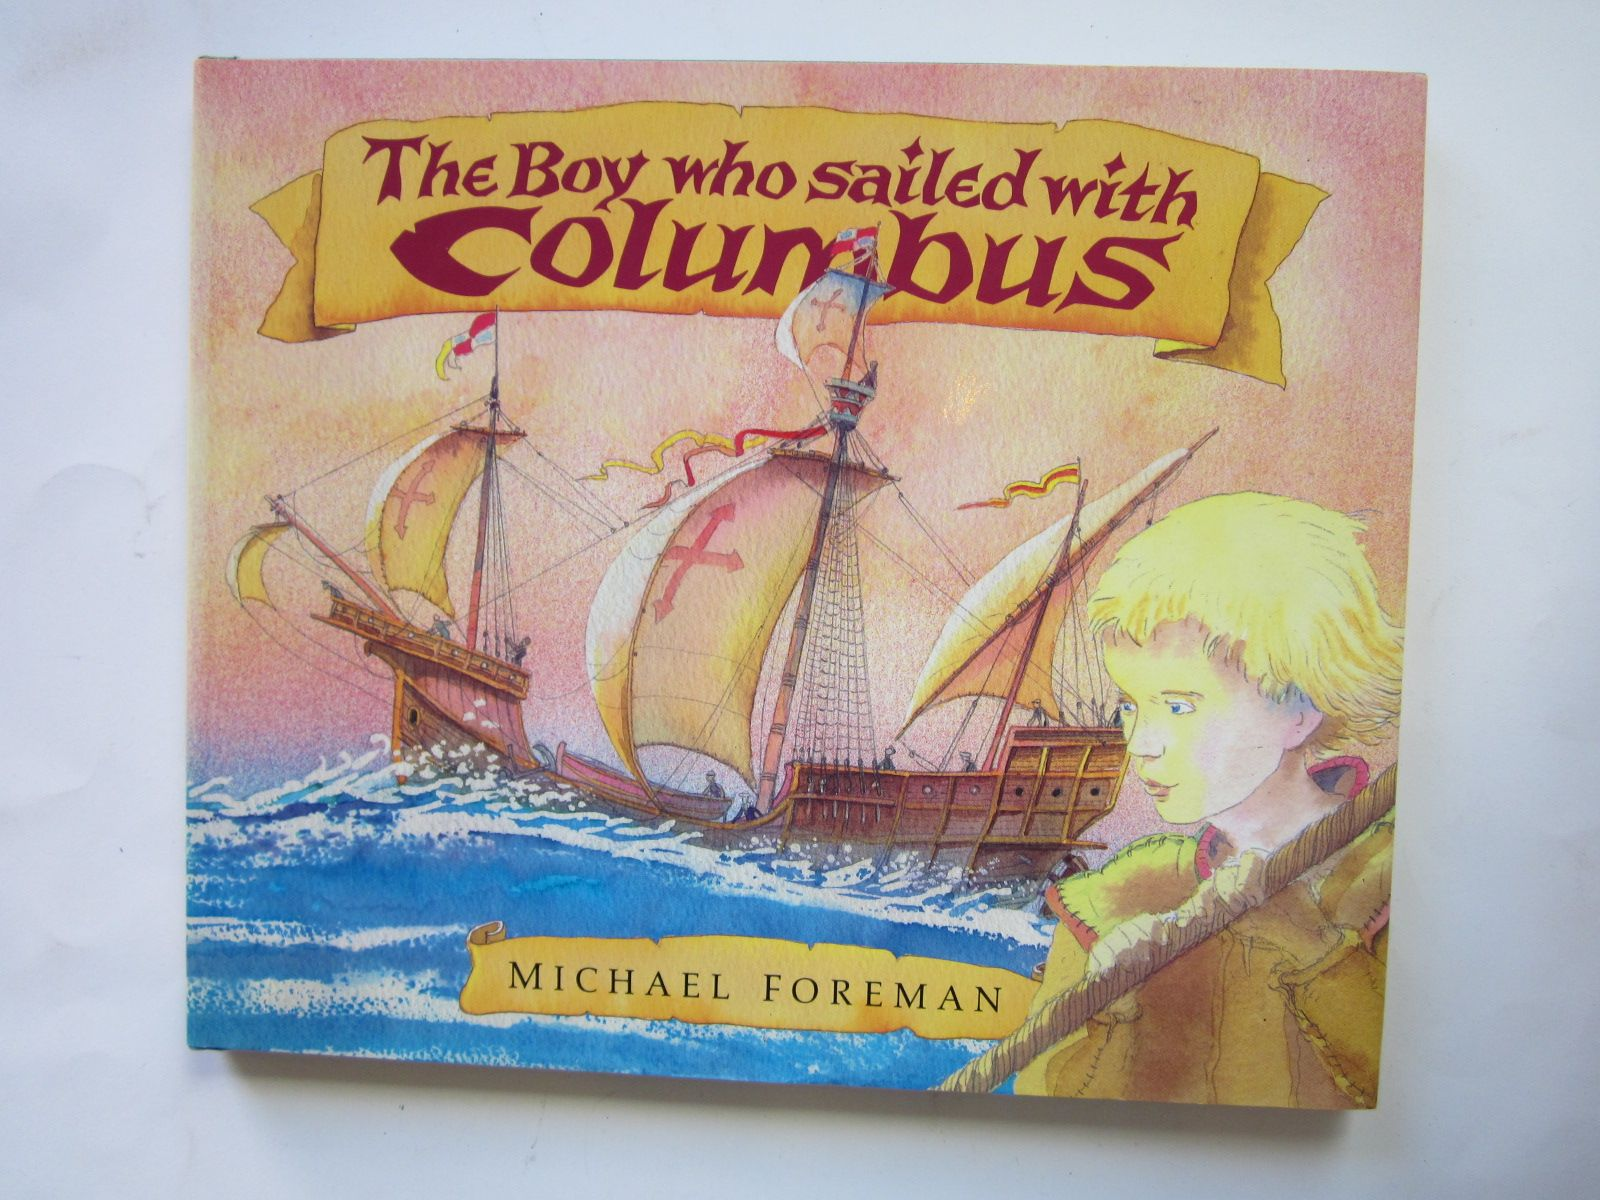 Photo of THE BOY WHO SAILED WITH COLUMBUS written by Foreman, Michael illustrated by Foreman, Michael published by Pavilion Books Ltd. (STOCK CODE: 1501125)  for sale by Stella & Rose's Books